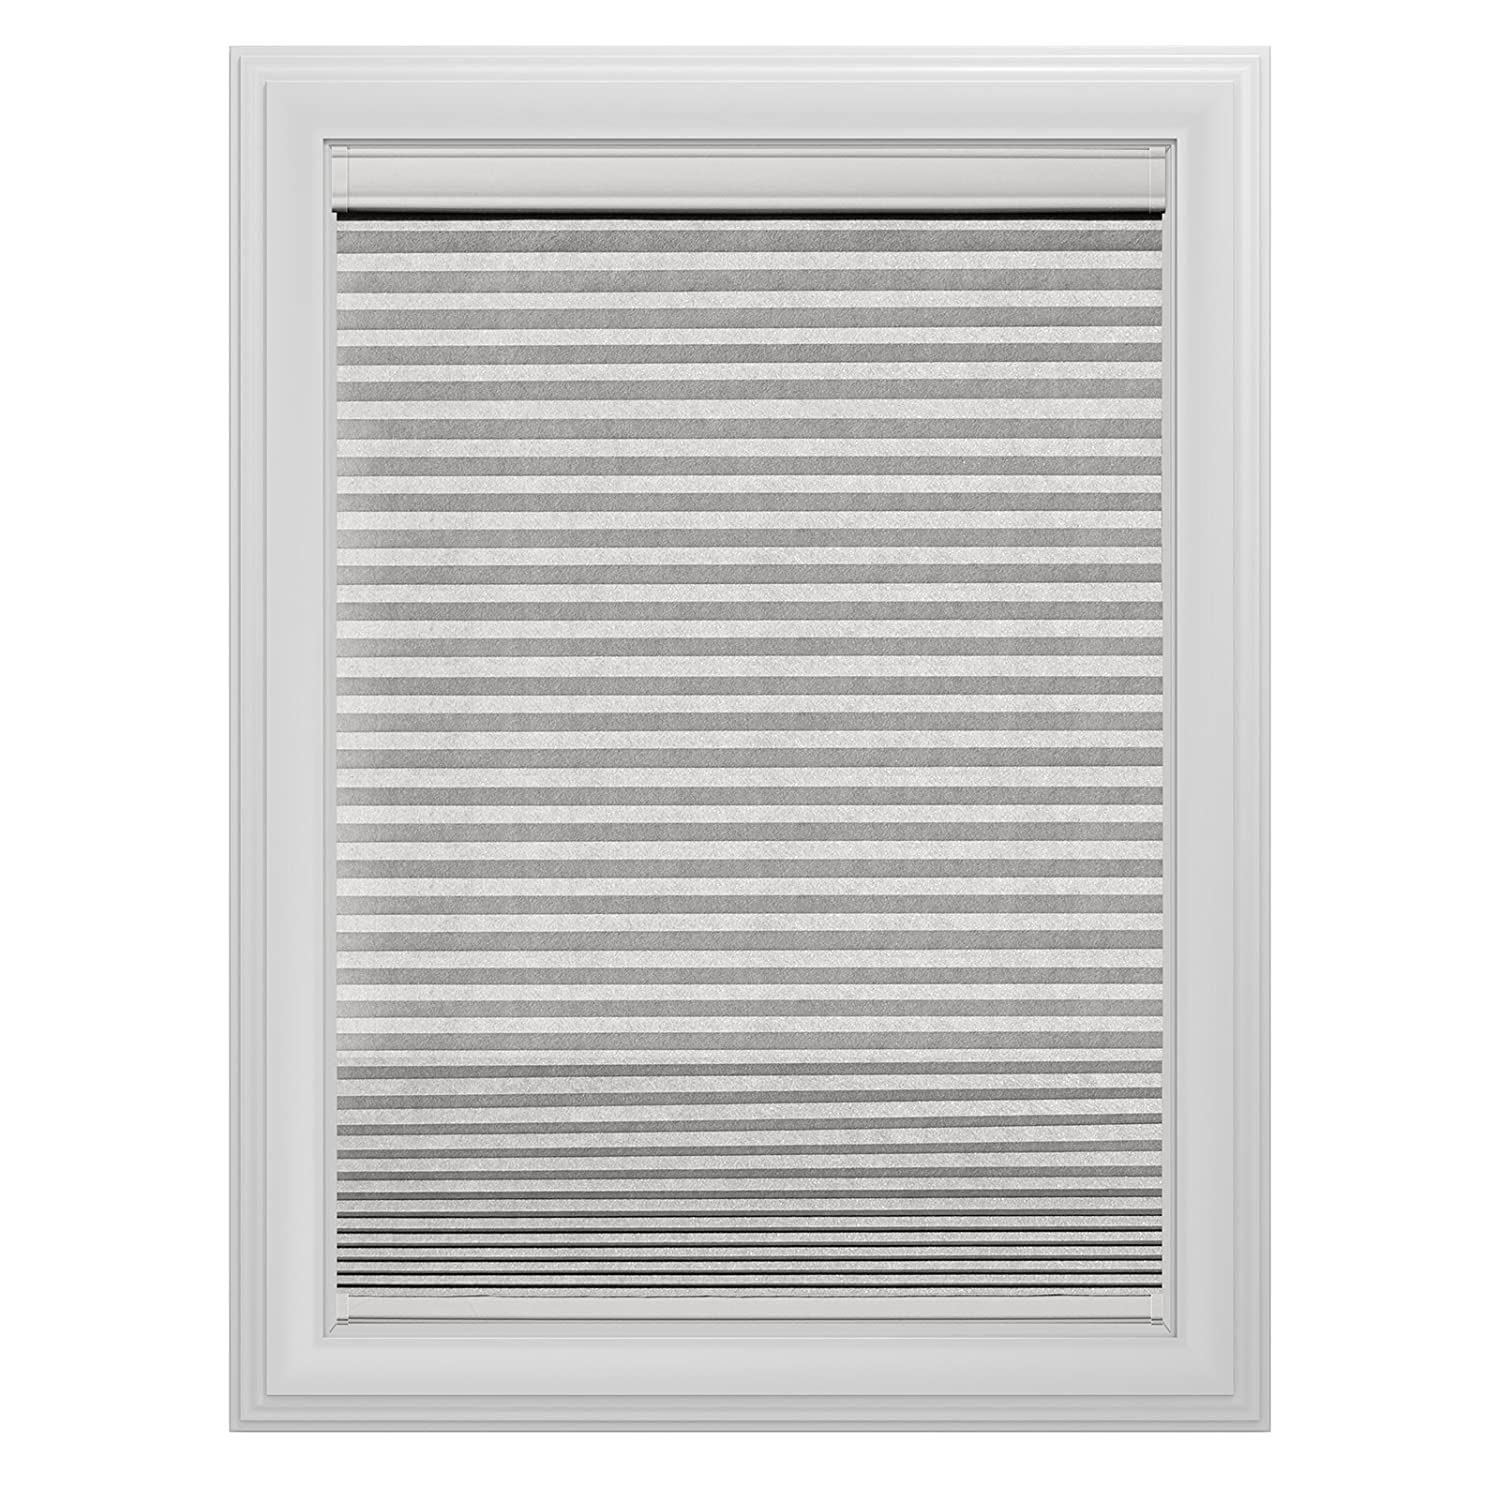 Bali Blinds Bali Essentials Cut-to-Measure Blackout 3/8 Single Cell Cellular Cordless Shade, 29 x 72, White Dove 29 x 72 Springs Window Fashions BTSSL